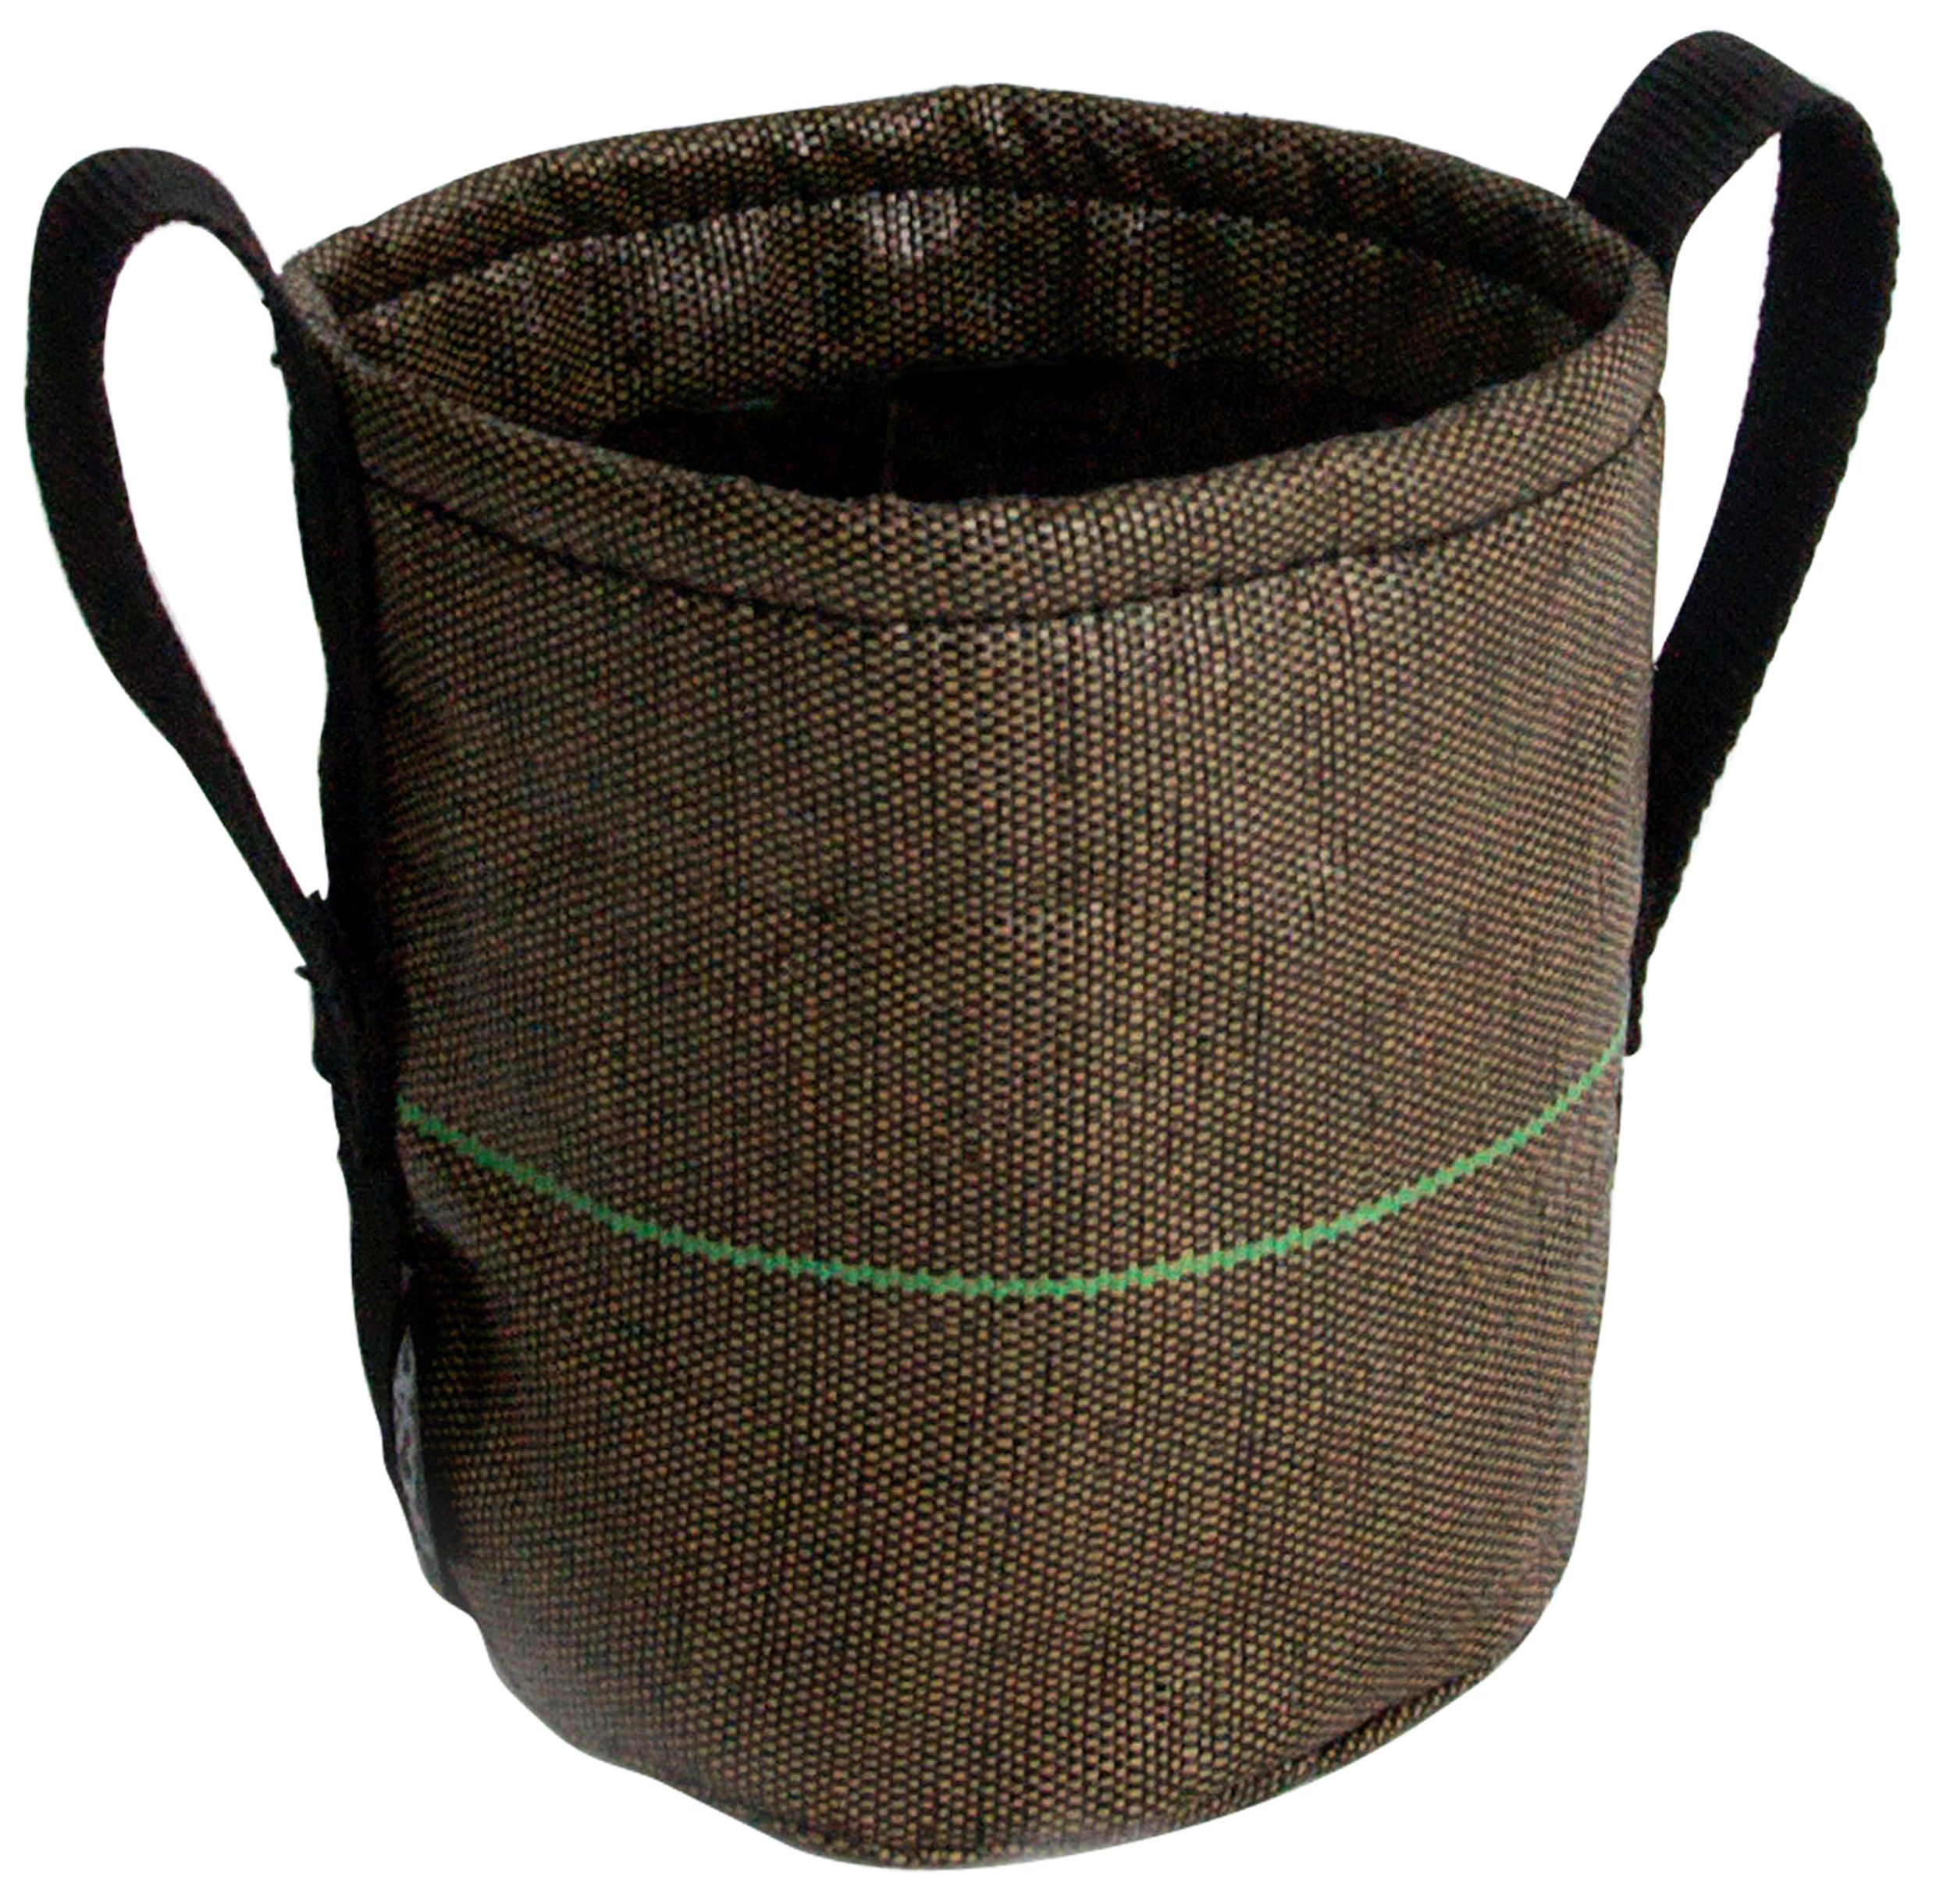 Outdoor - Pots & Plants - Geotextile Flowerpot - 50 L - Outdoor by Bacsac - 50L - Brown - Geotextile cloth